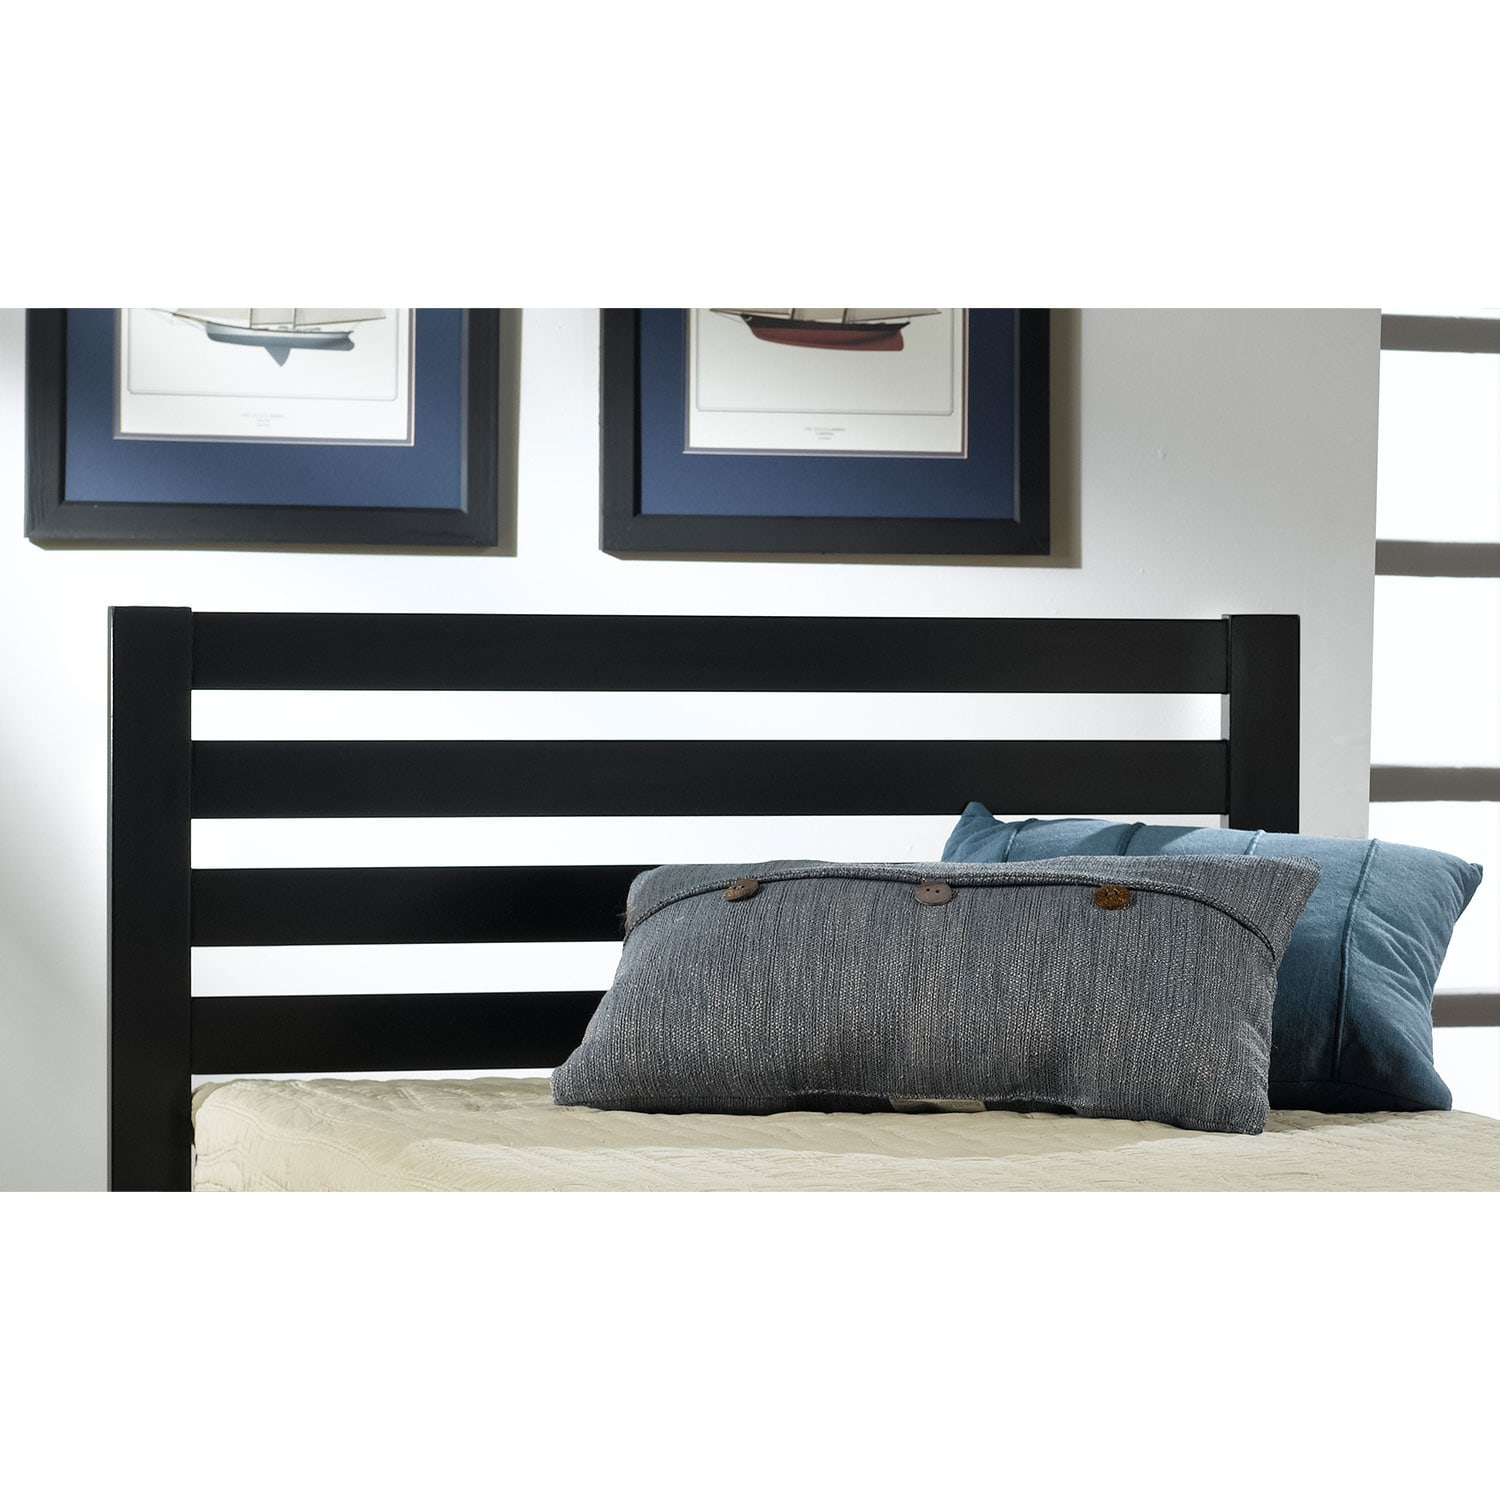 Bedroom Furniture - Aiden Twin Bed